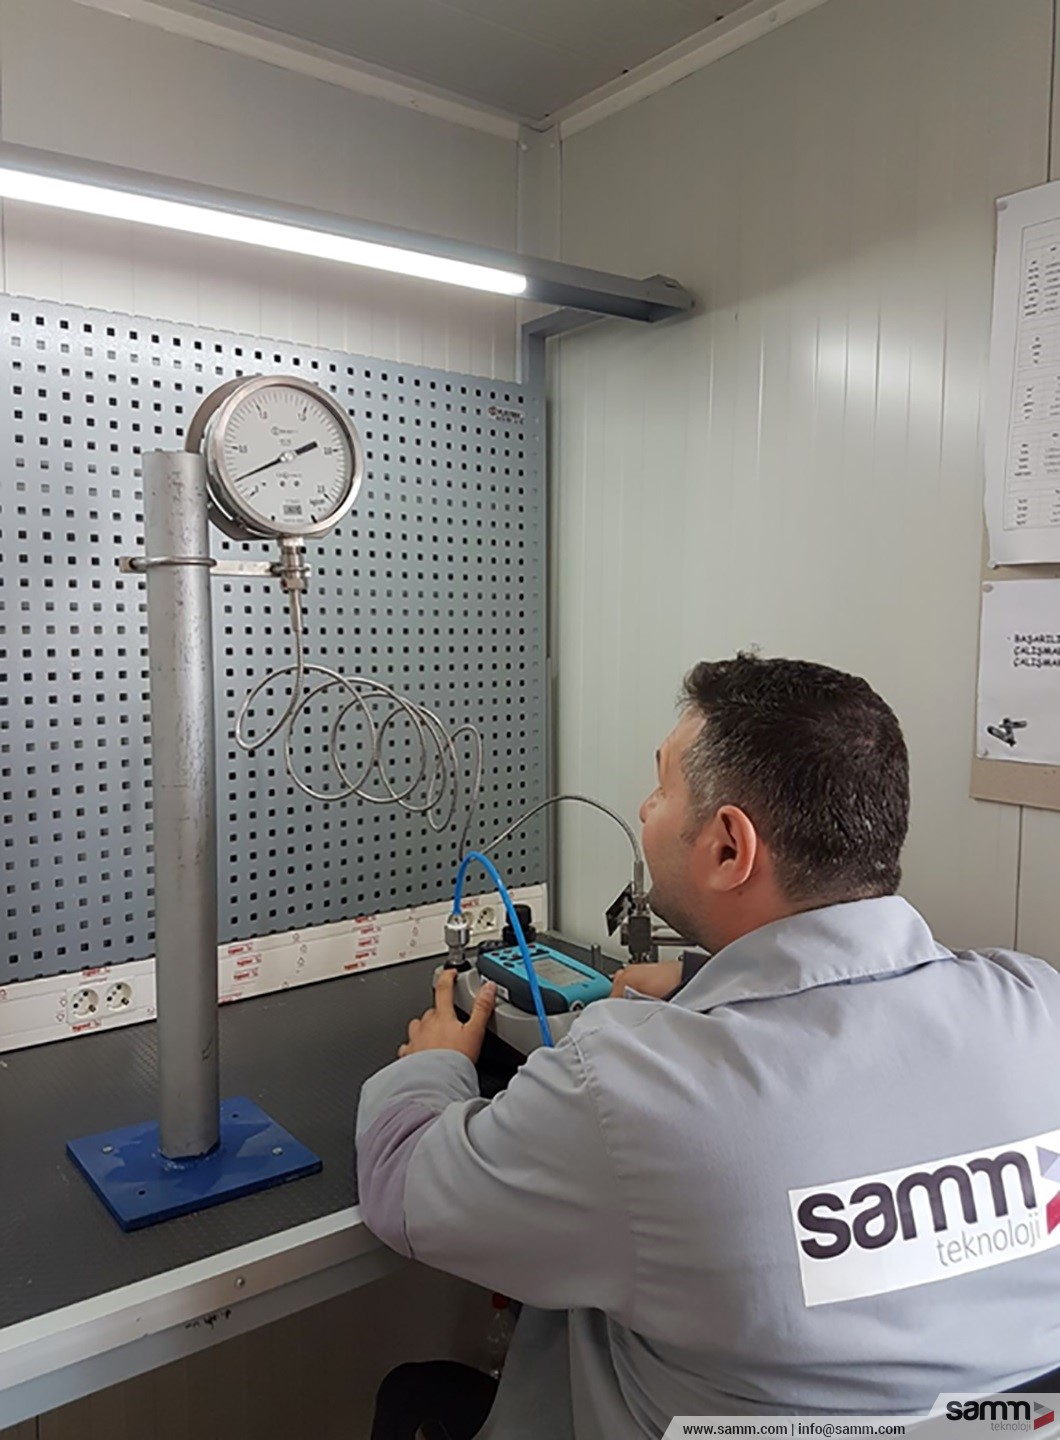 Samm Teknoloji | Industriel (I&C) maintenance and calibration are being served with more than 50 test devices.